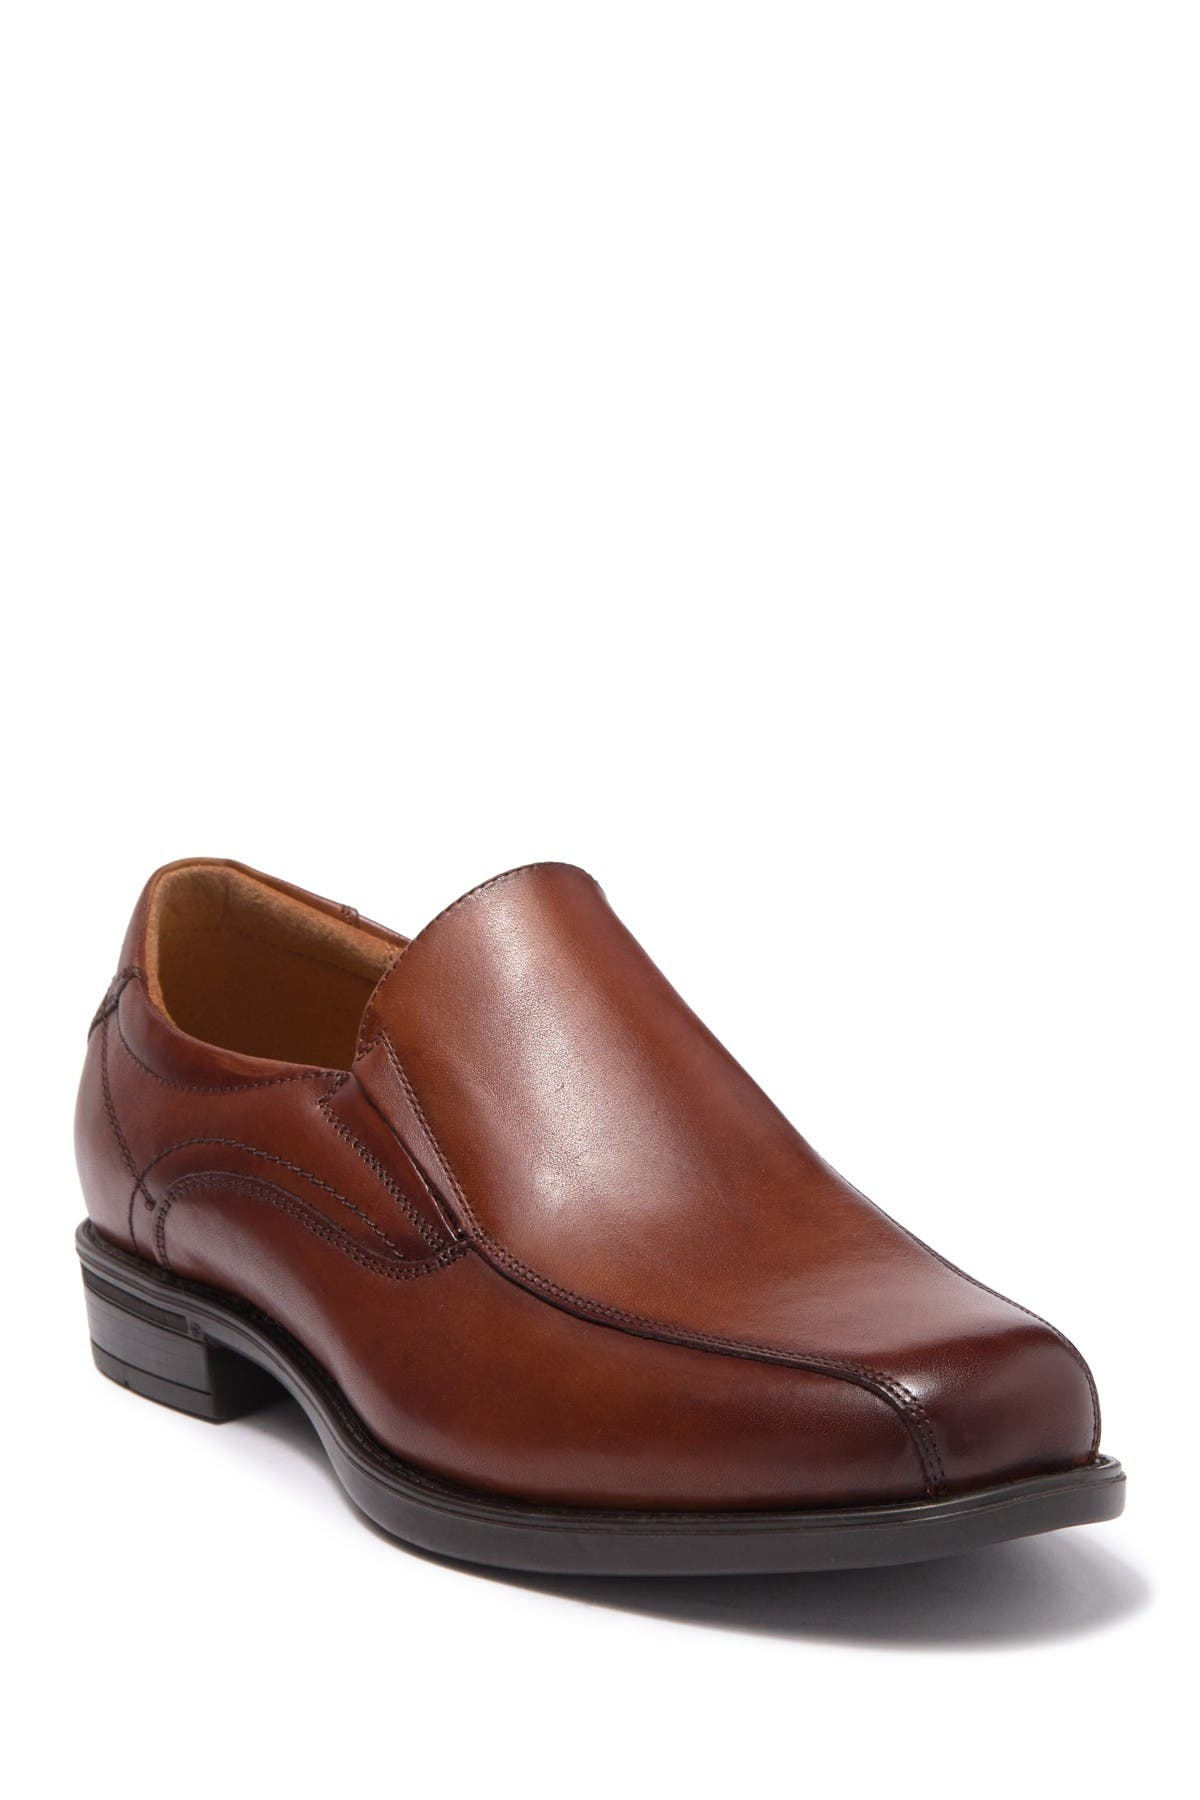 Image of Florsheim Leather Venetian Loafer